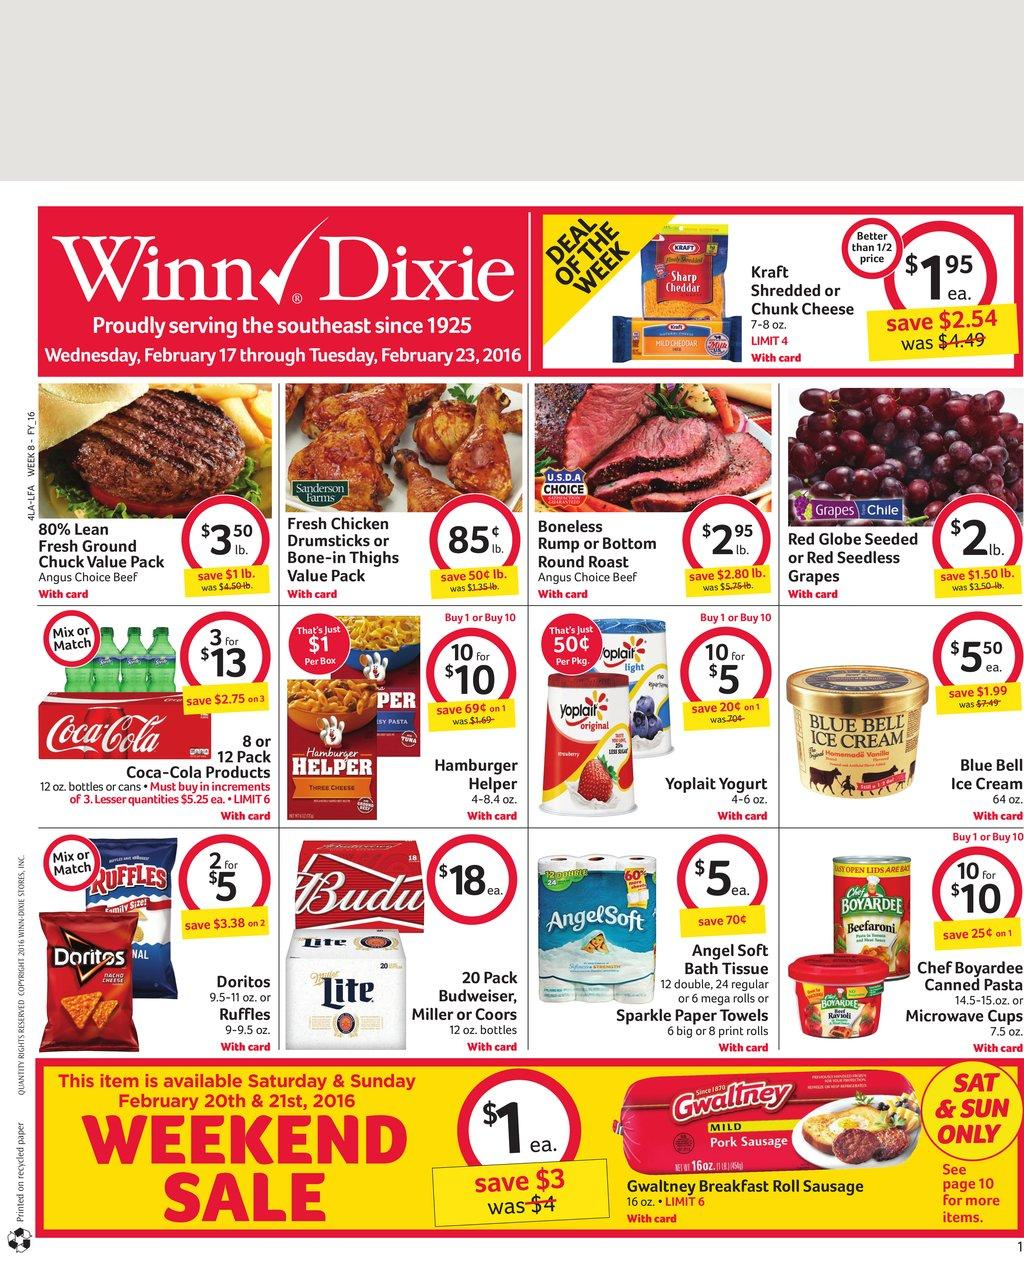 winn dixie sale papers Find the latest weekly circular ad & sunday flyer for winn dixie here also, save with coupons and the latest deals from winn dixie.